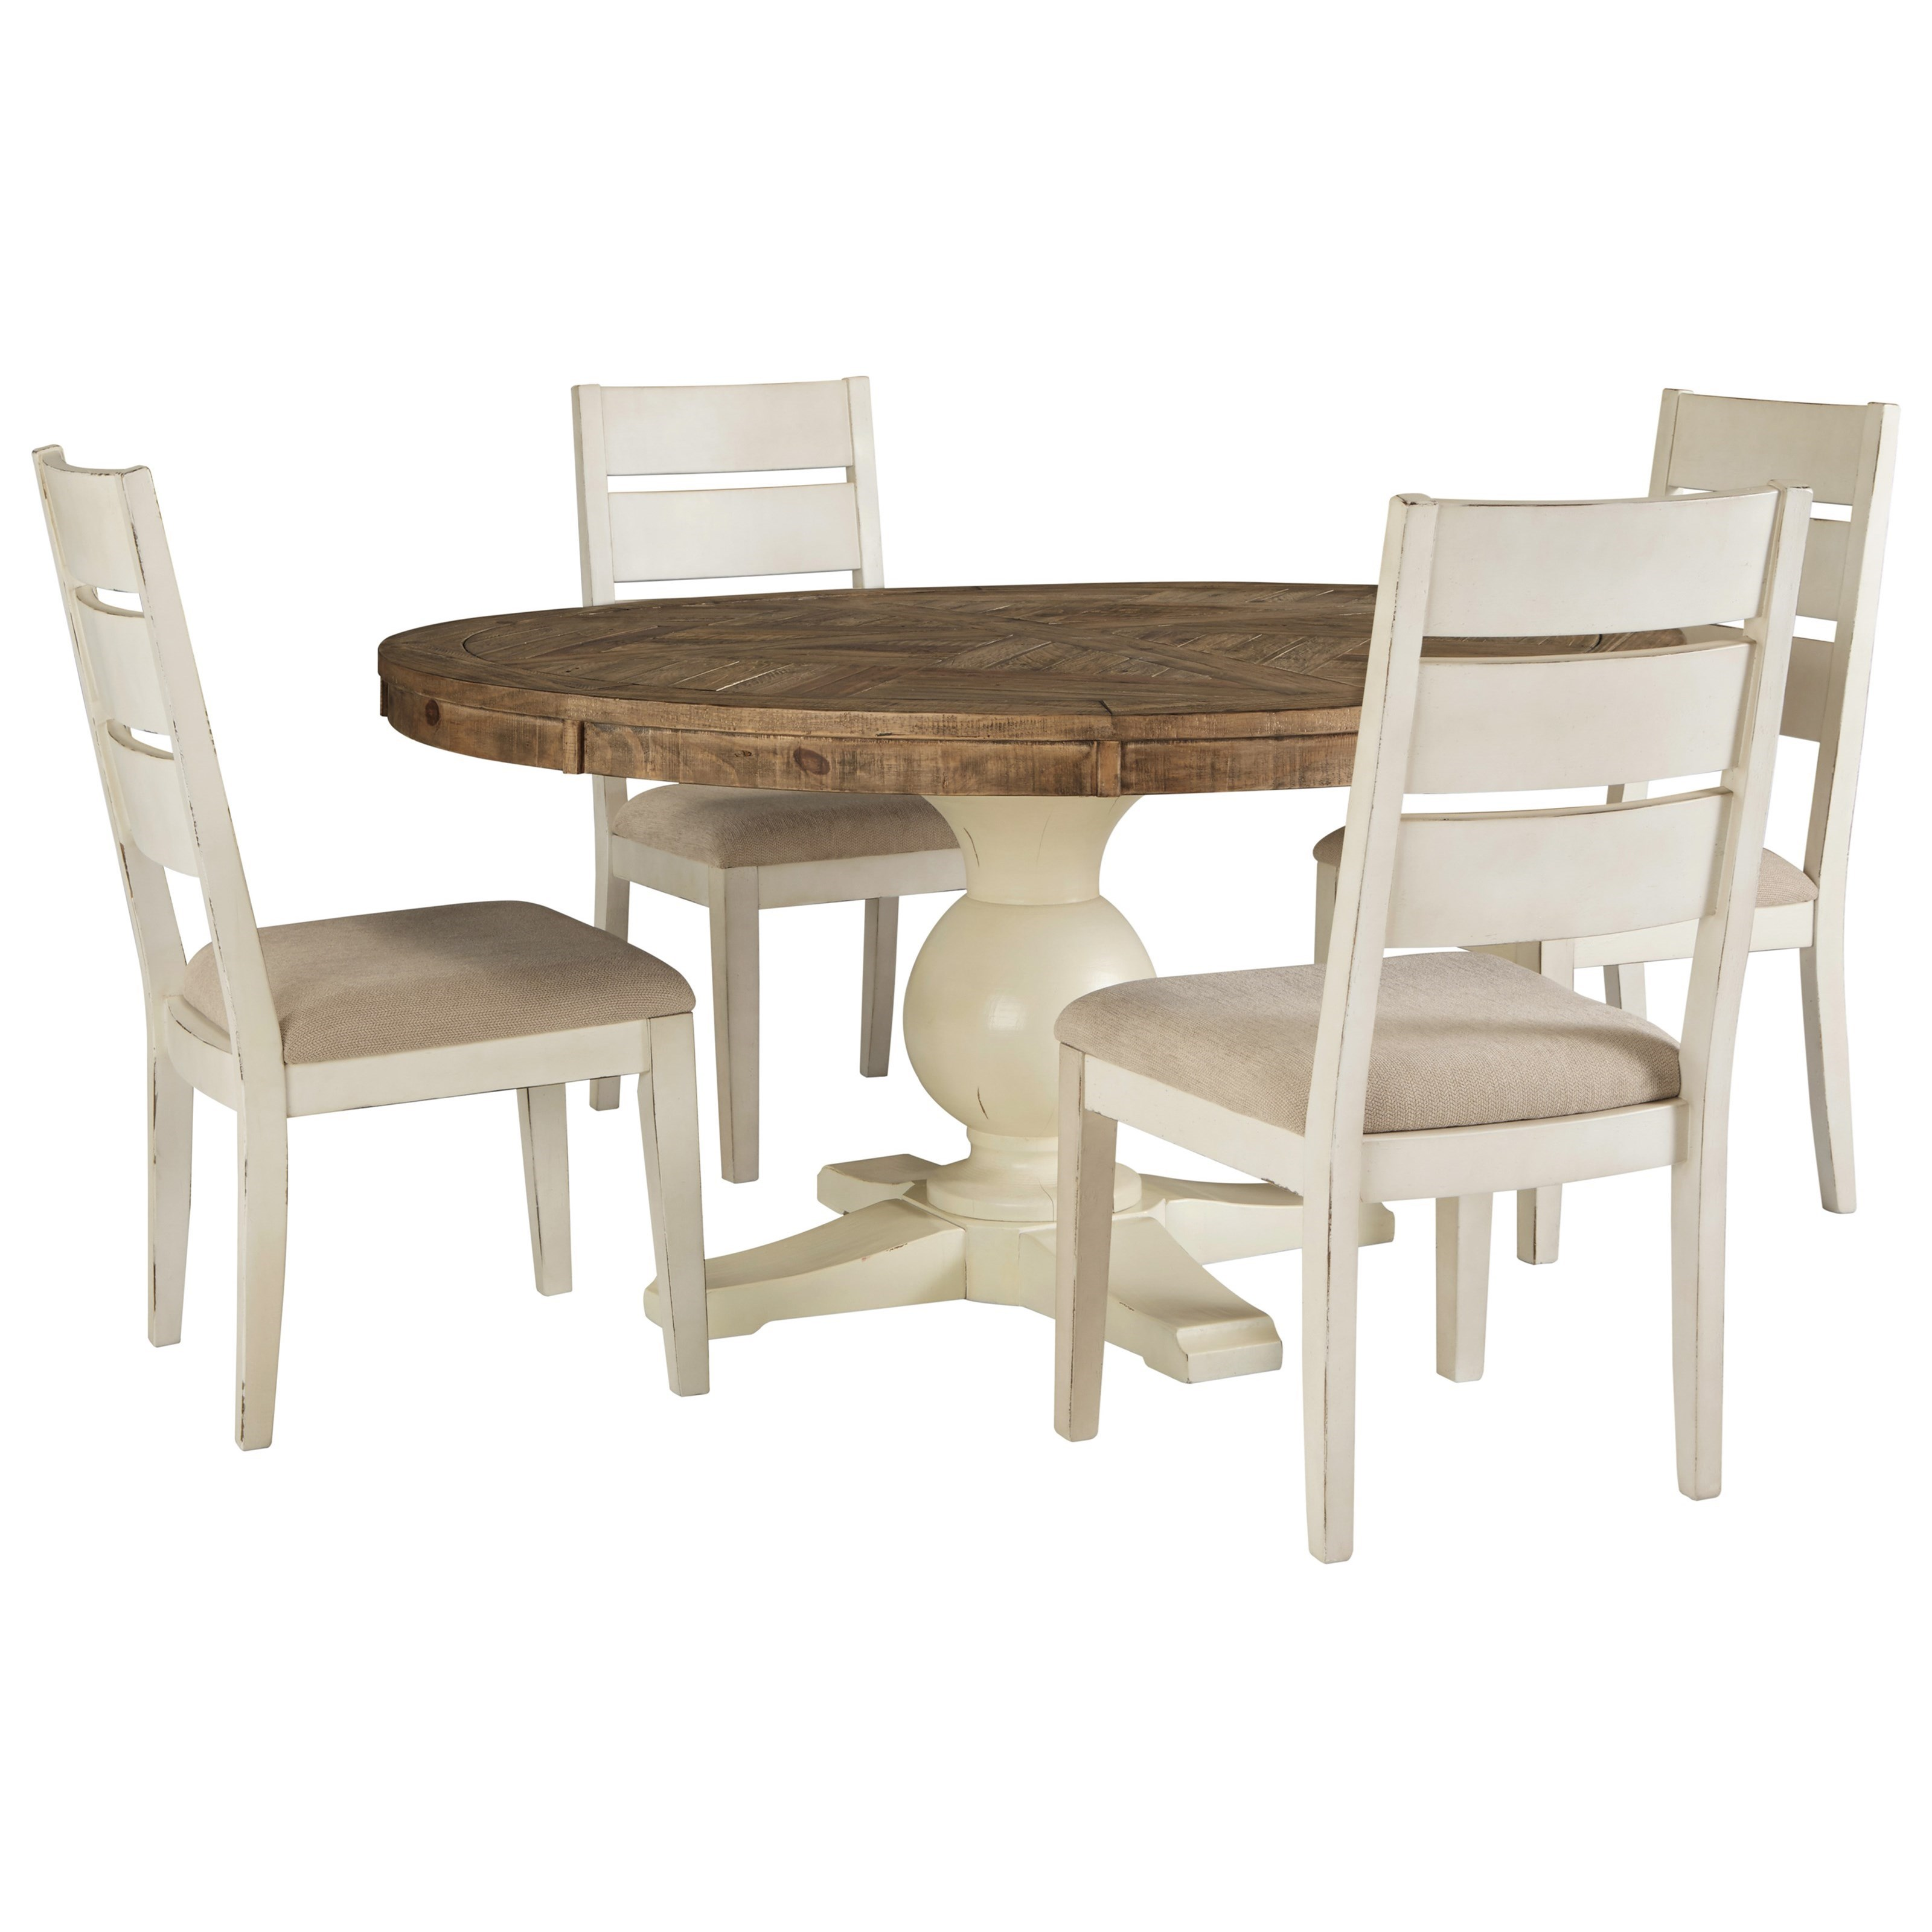 Grindleburg 5 Piece Round Table and Chair Set by Signature Design by Ashley at Value City Furniture